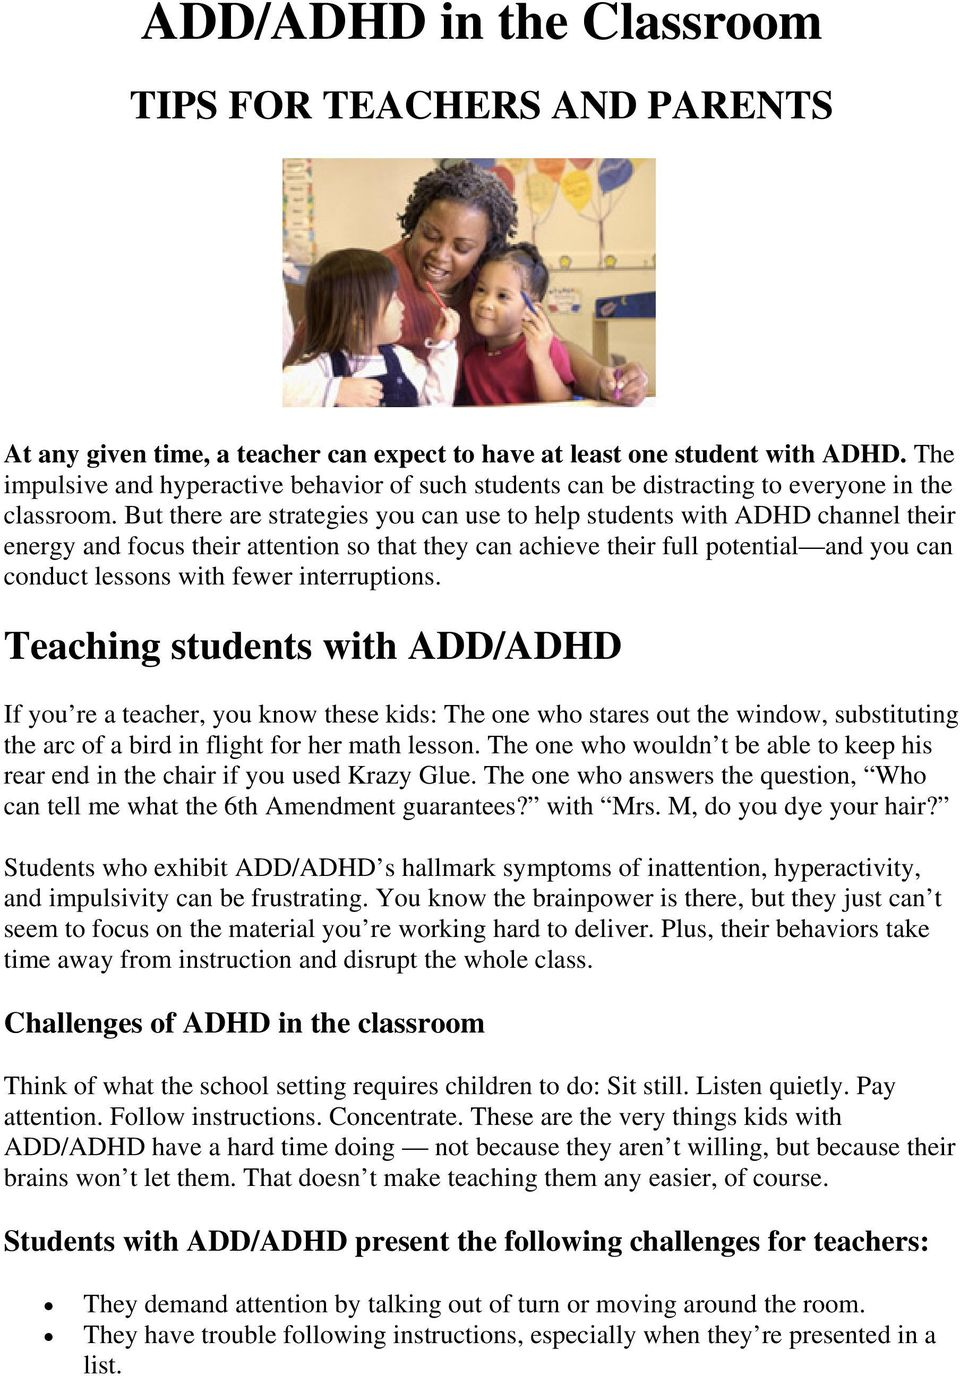 But there are strategies you can use to help students with ADHD channel their energy and focus their attention so that they can achieve their full potential and you can conduct lessons with fewer